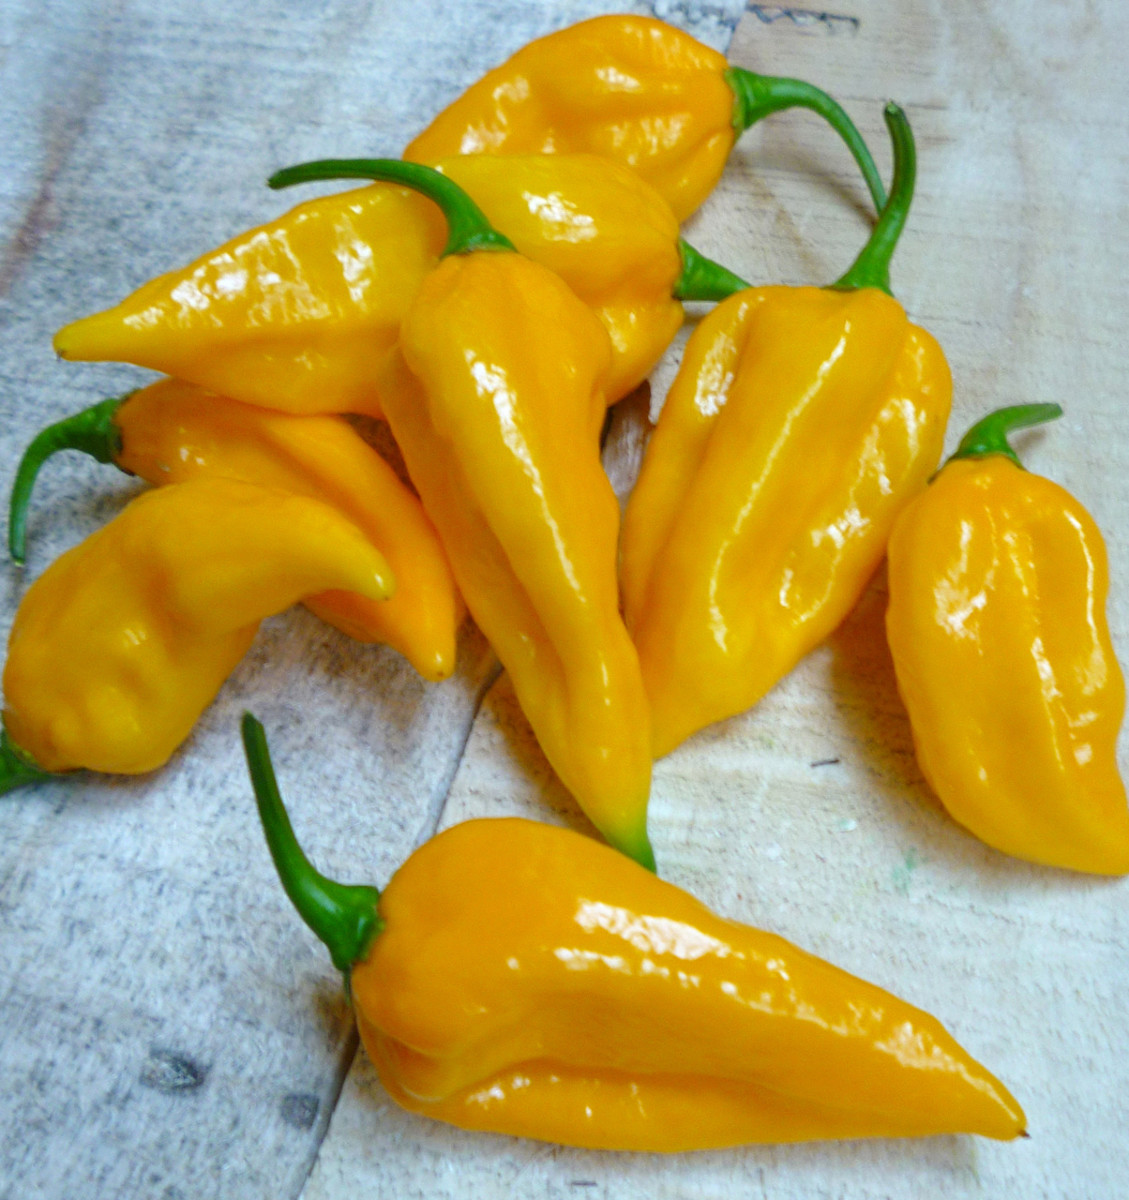 Fatalii Peppers. Reaching over 300,000+ Scoville Units, these are some seriously hot chilies!